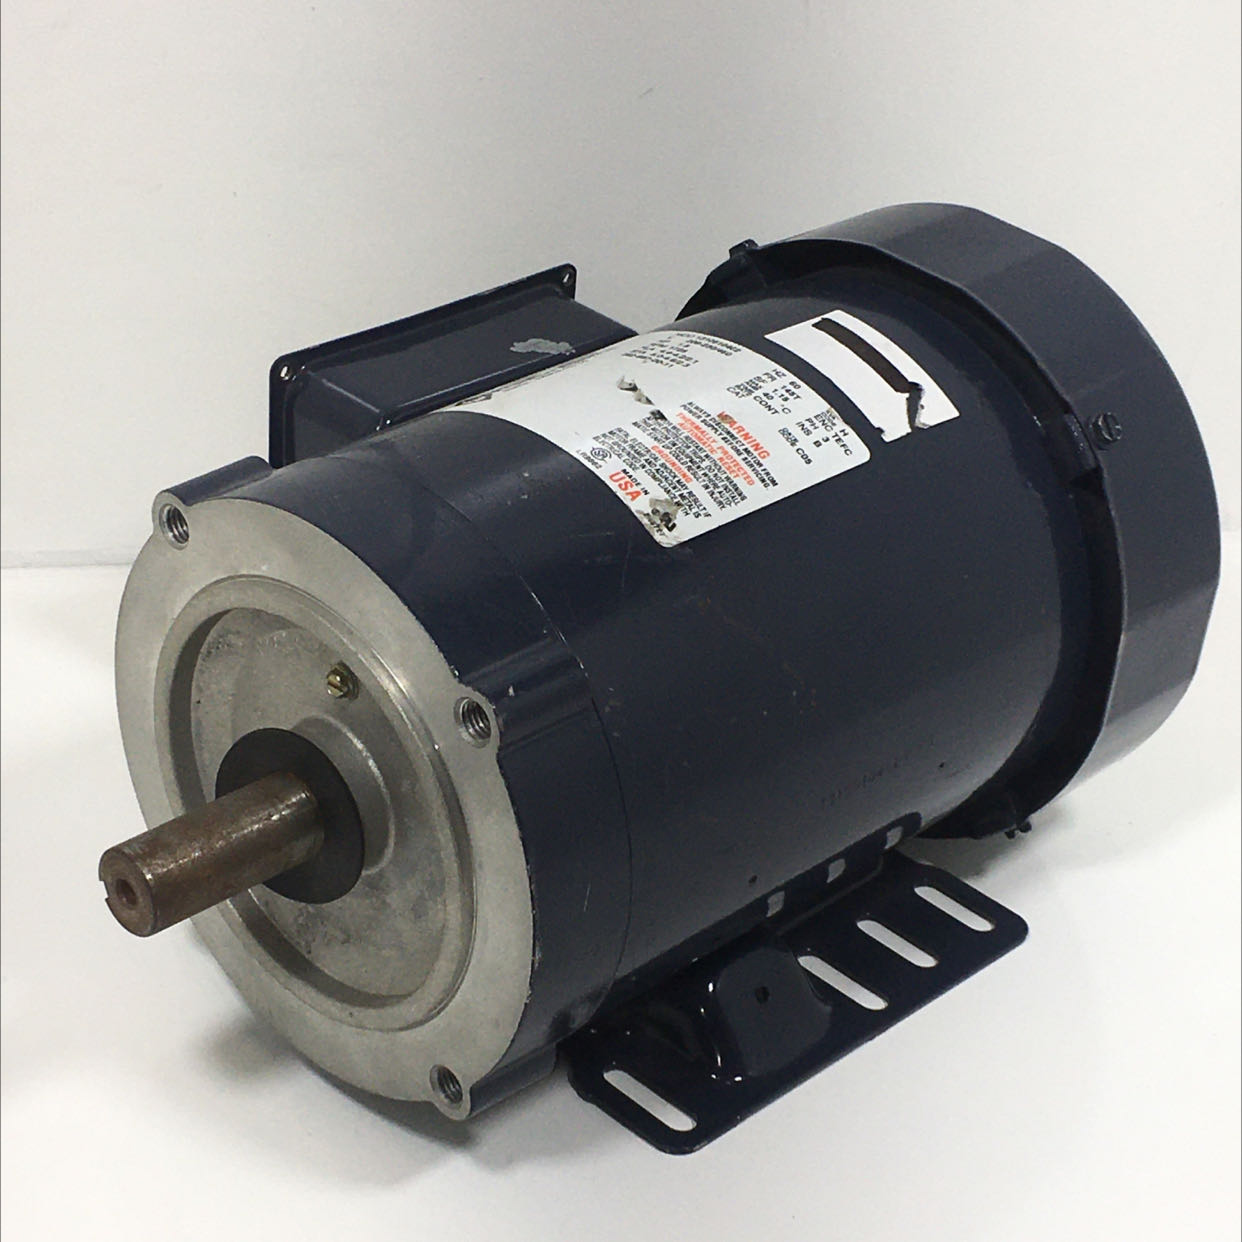 Franklin Electric 1310510402 General Motor HP 1.5